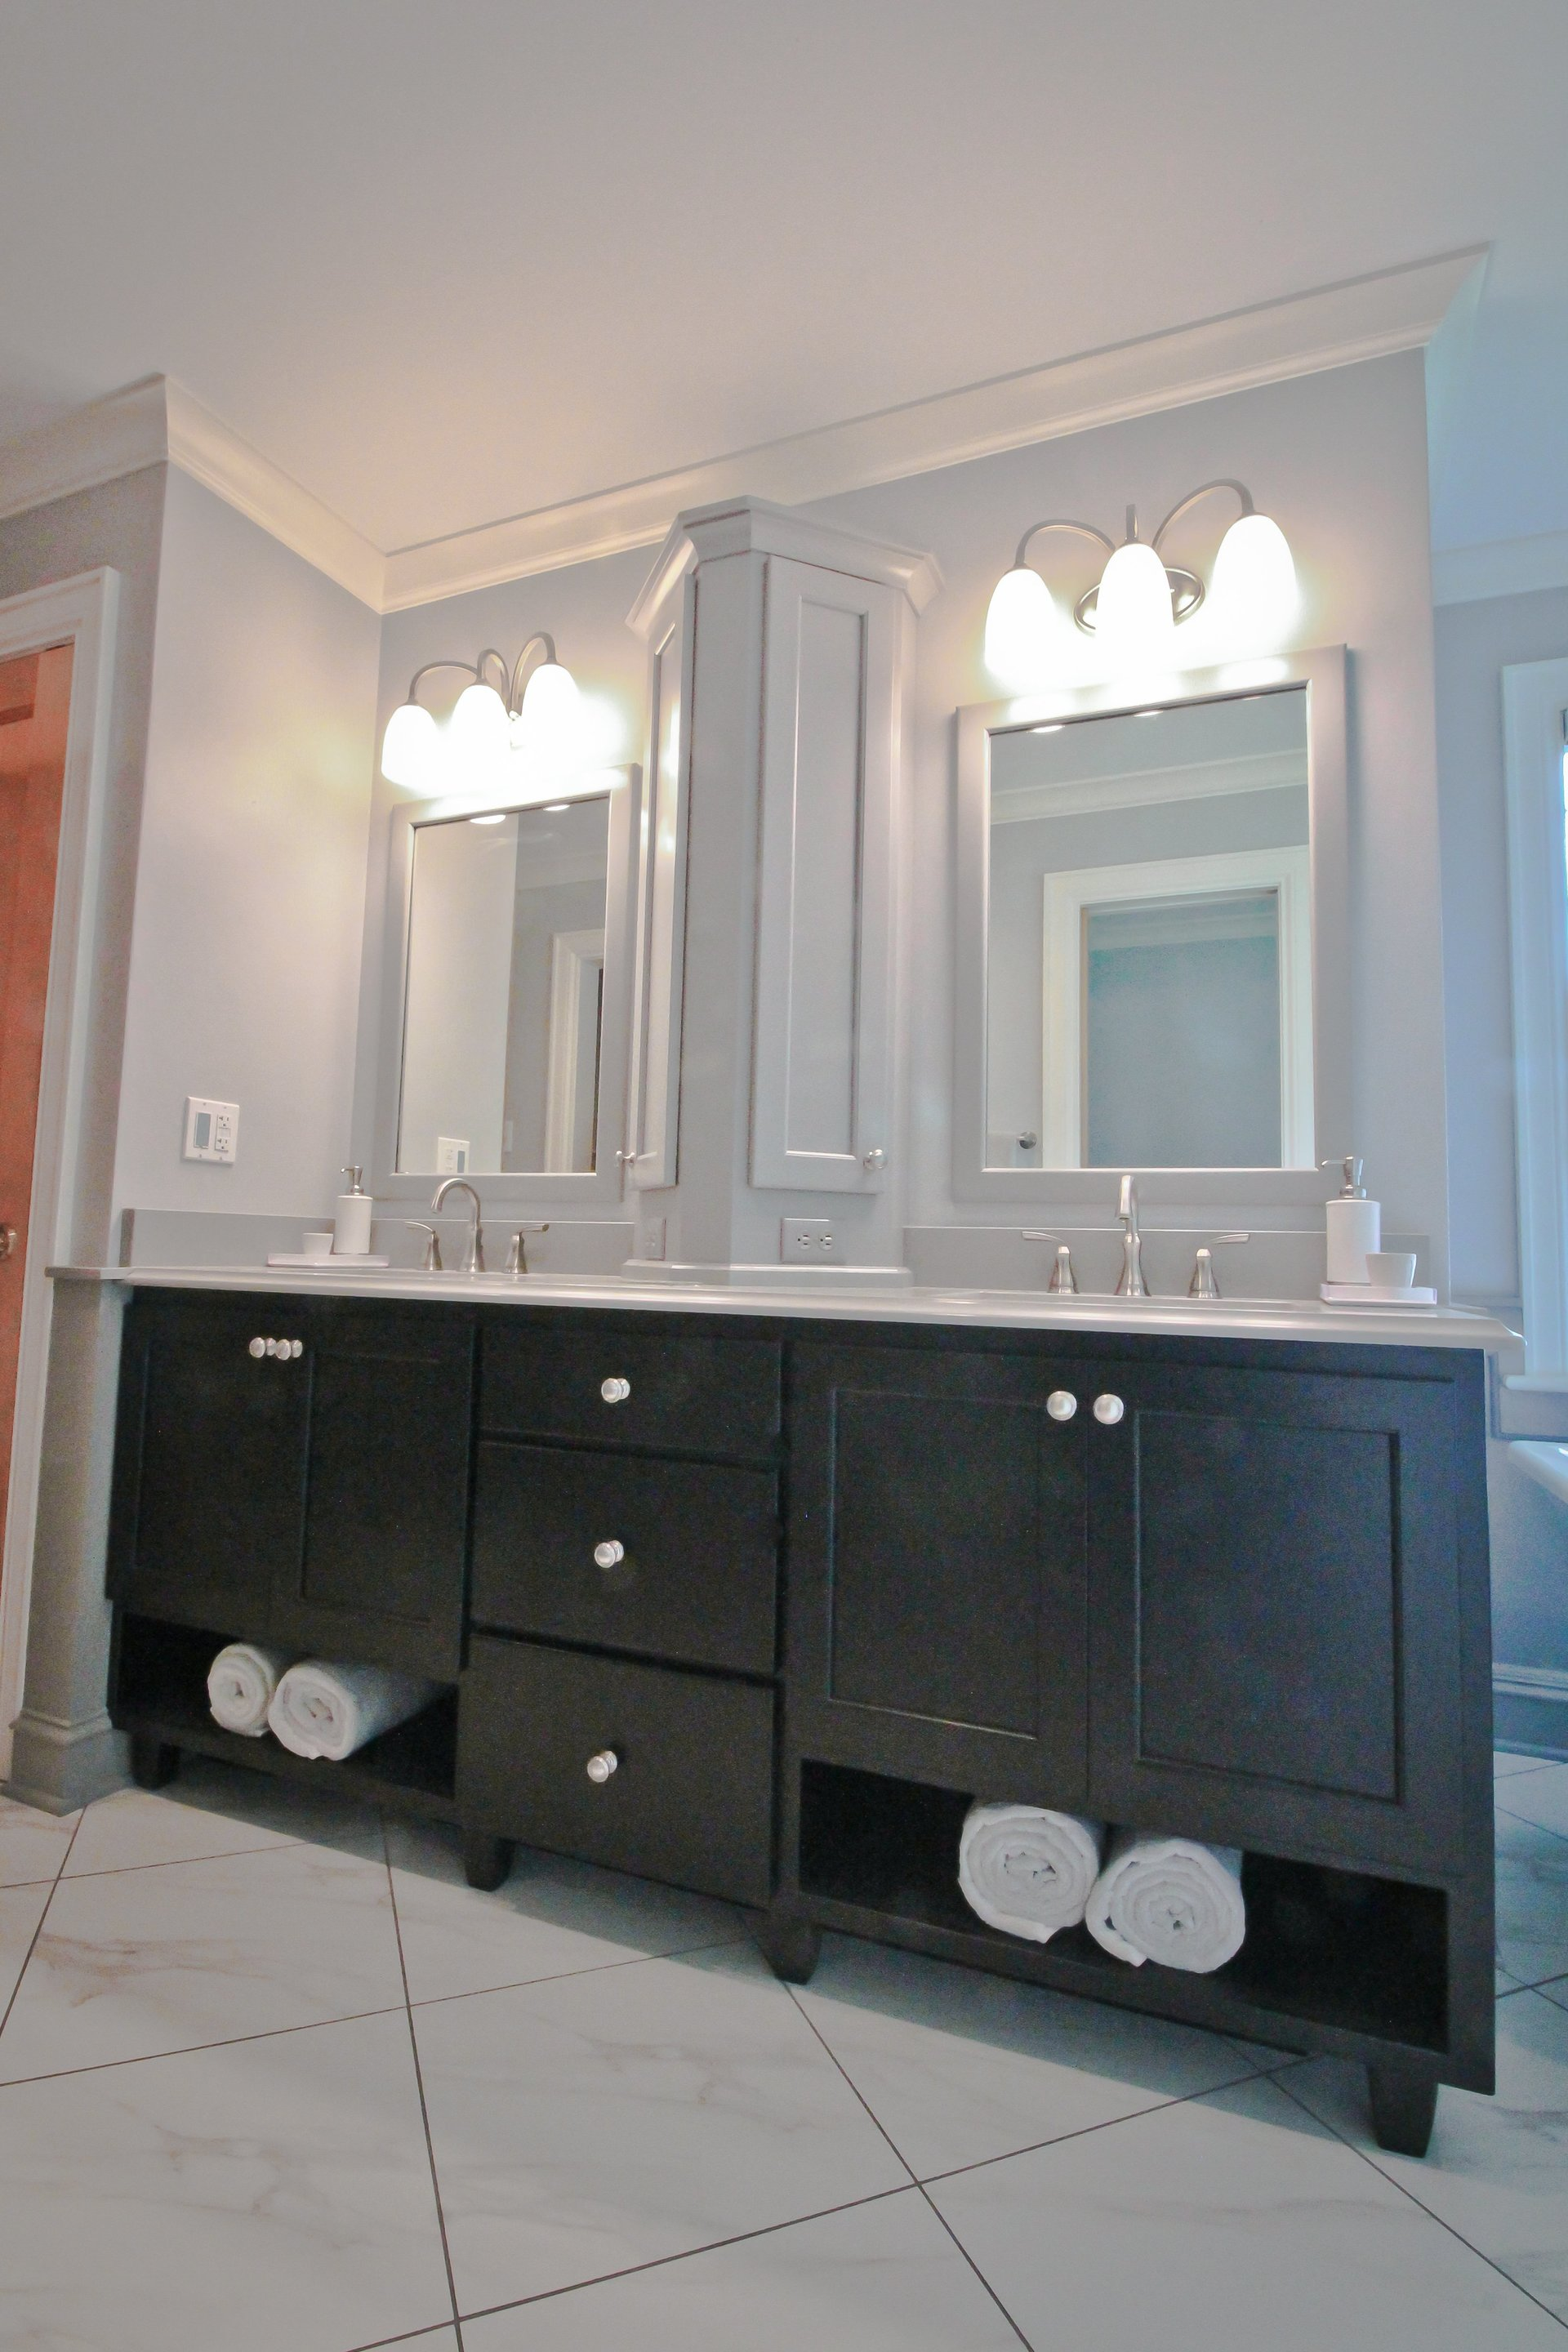 cabinets concept wooden for style bathroom white your vanity sensational shaker regarding medicine double on decor traditional home cabinet